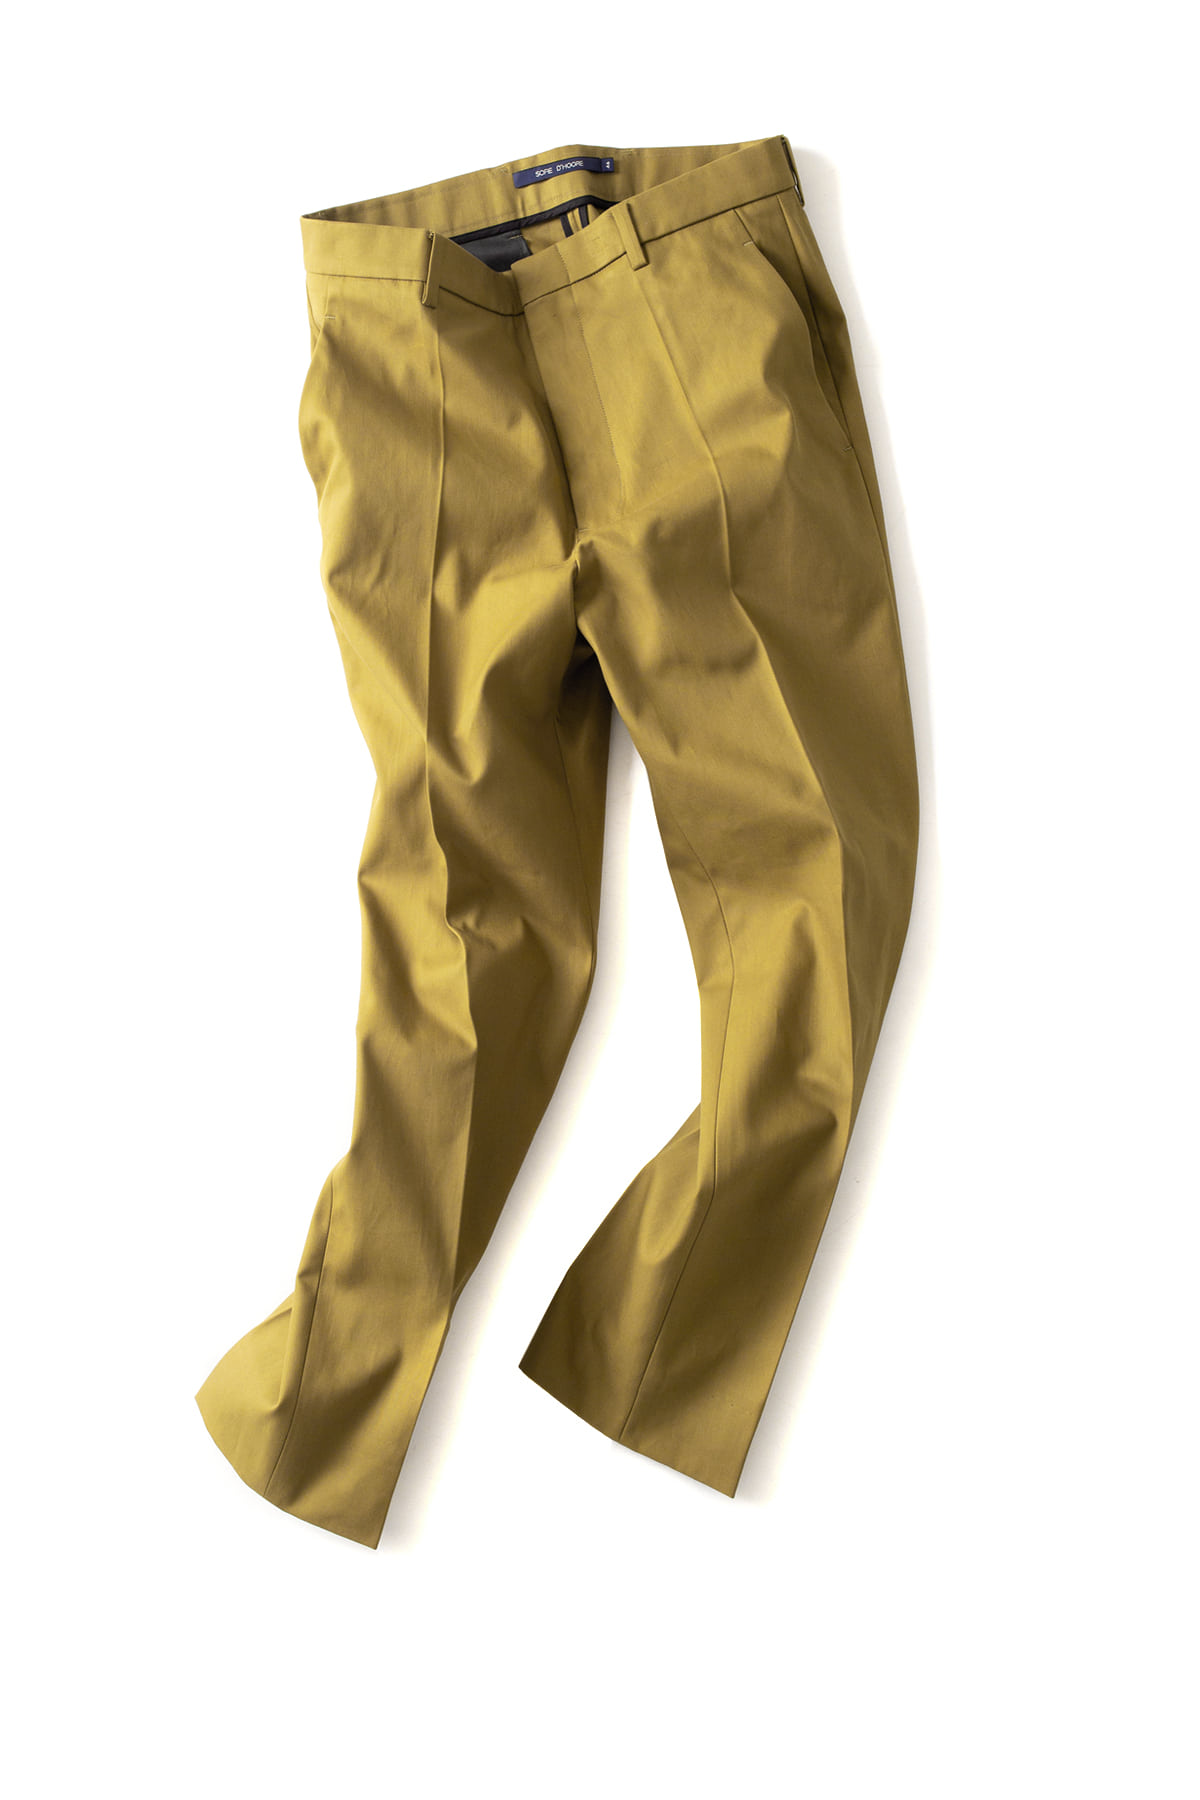 Sofie D'Hoore : Classic Fitted Pants (Khaki)